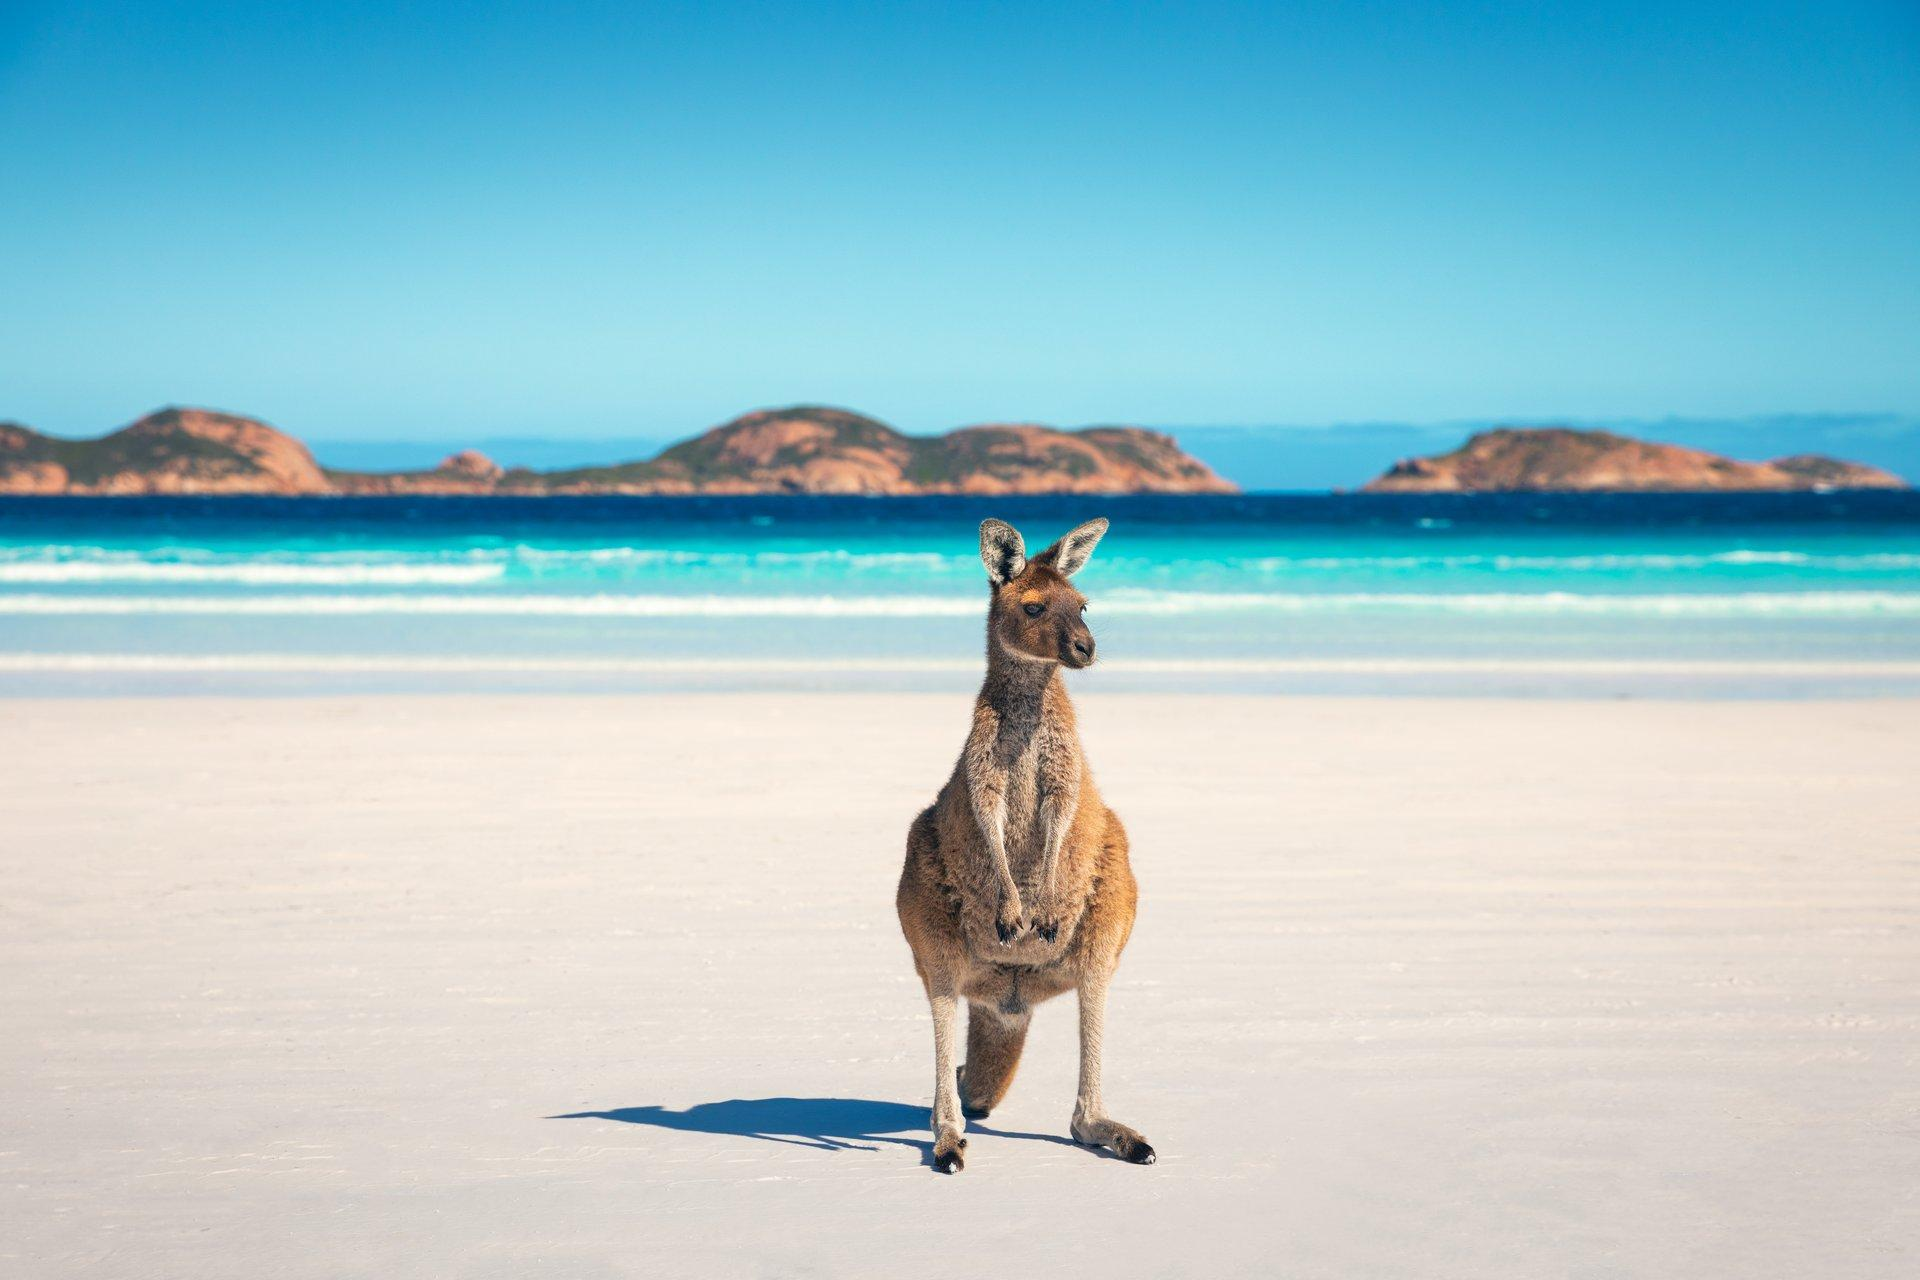 Spend 11 days taking one unique road trip around the edge of the South West Thumbnail